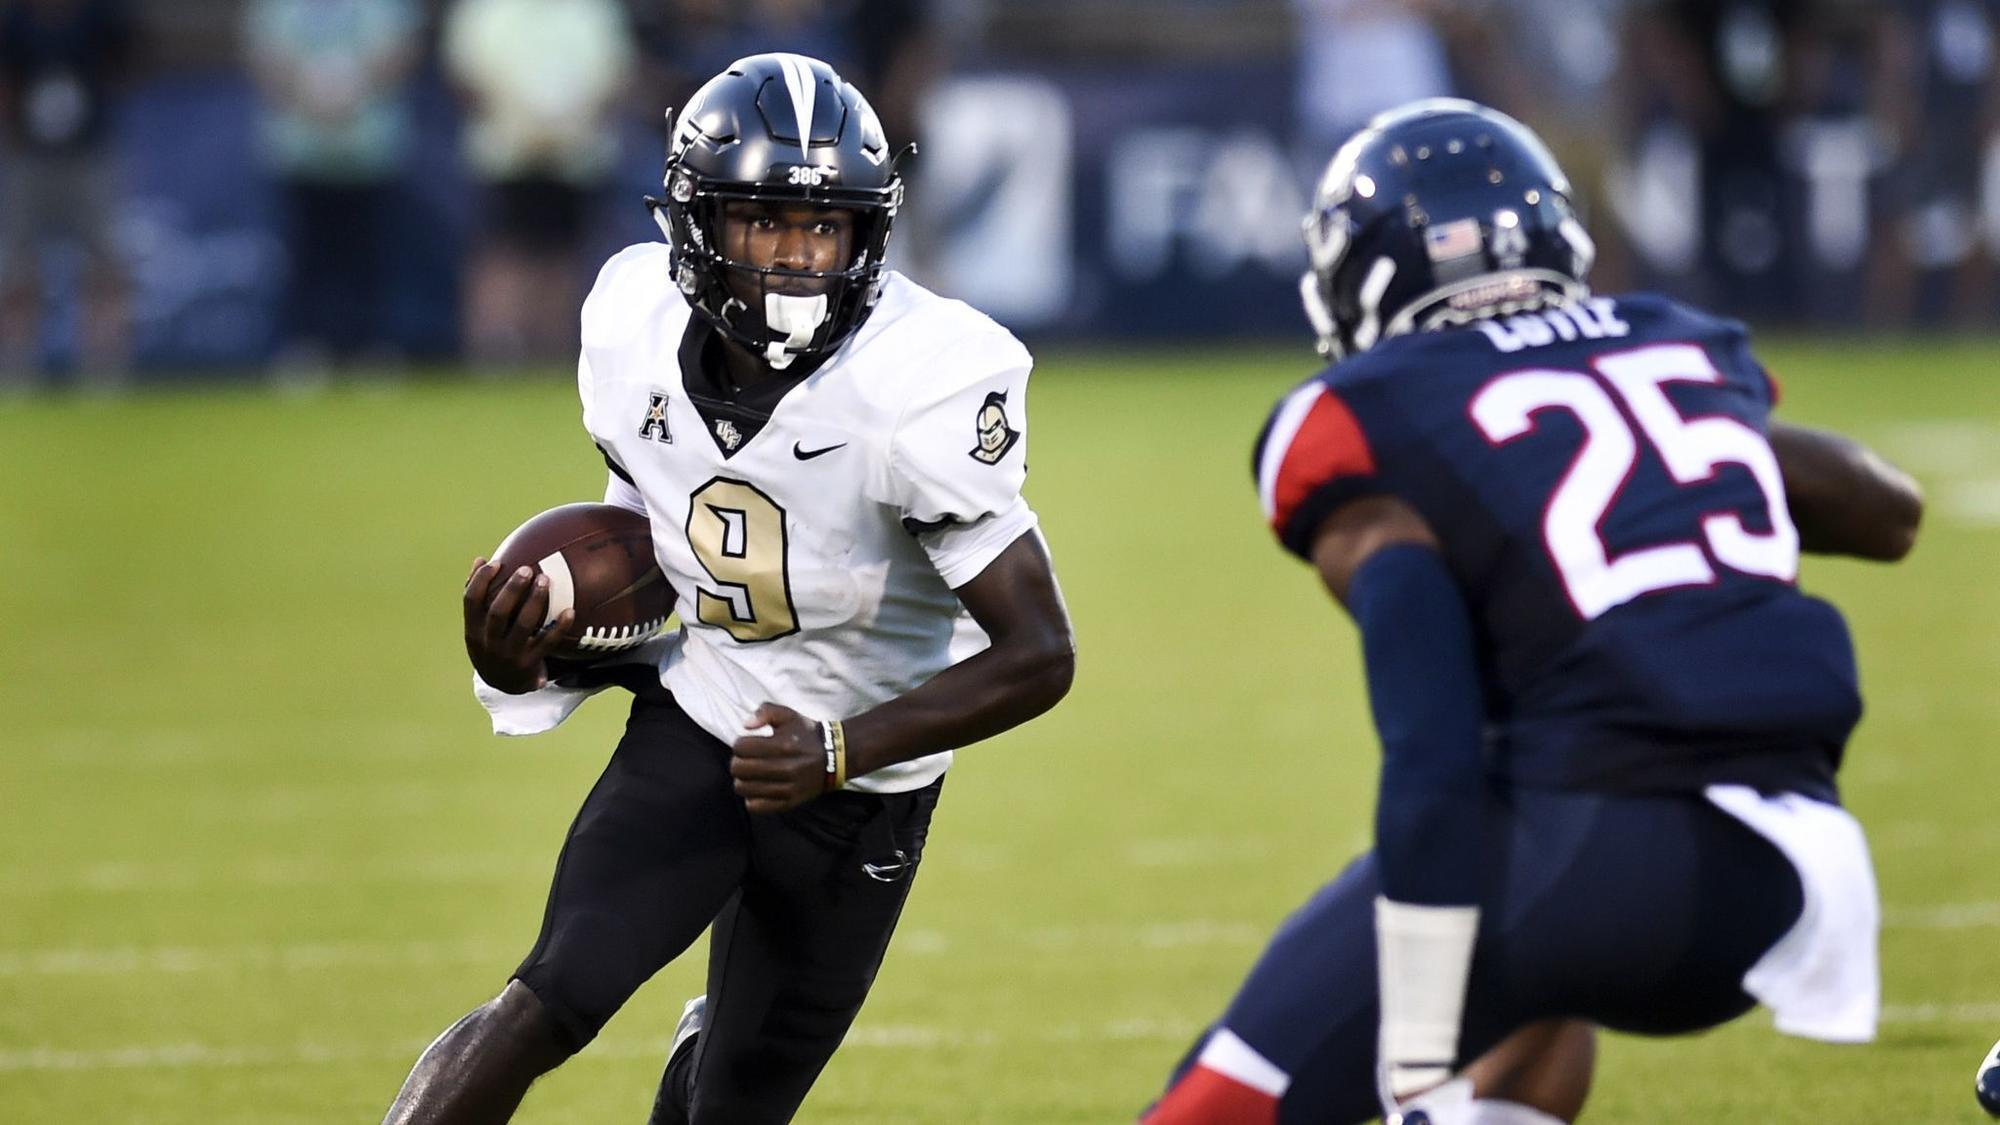 Hc-sp-american-athletic-conference-power-rankings-uconn-ucf-houston-south-florida-20181016